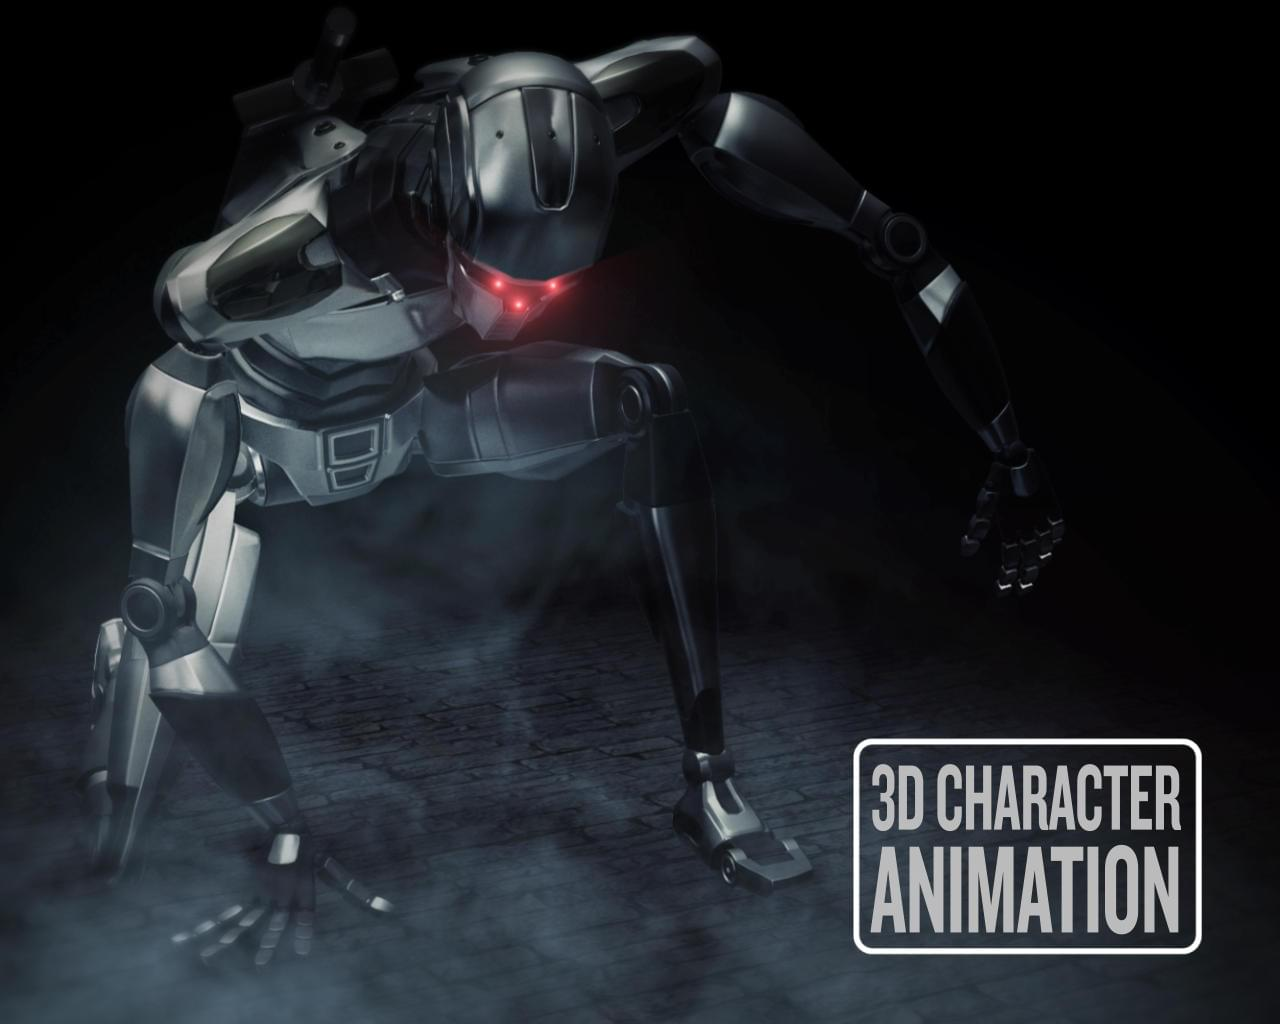 3D Character Animation by russvirtual - 115339